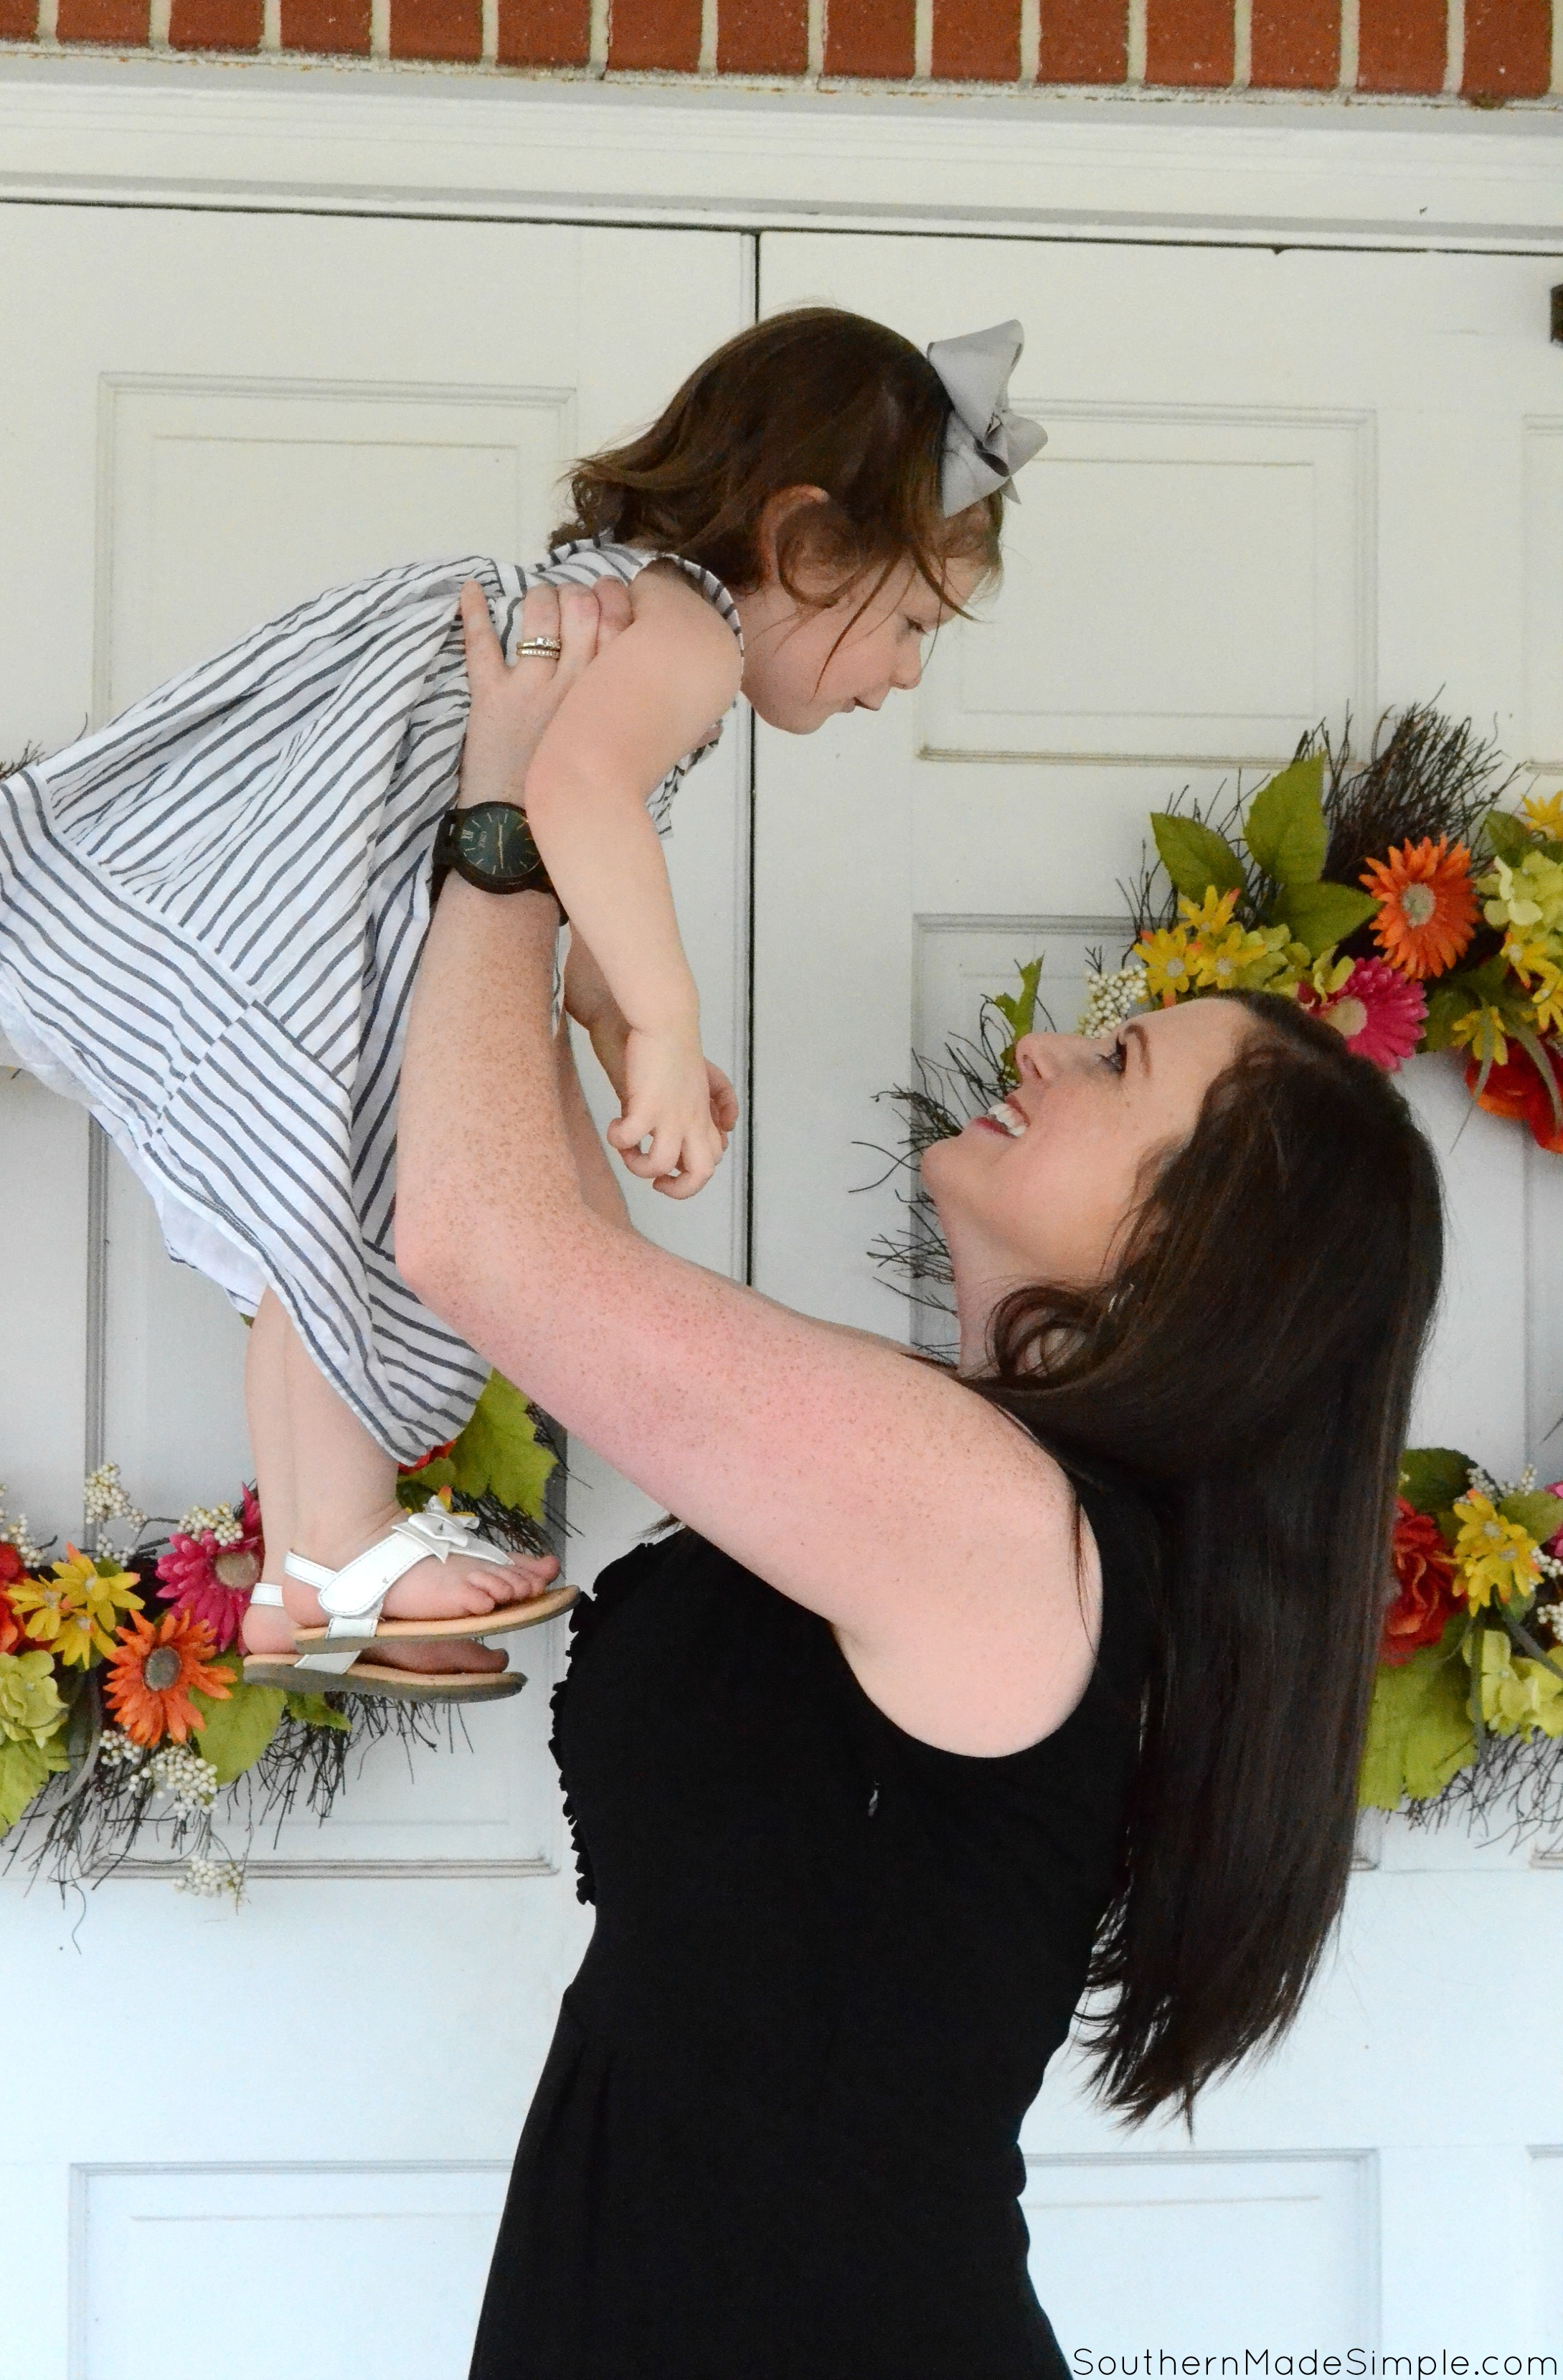 Sharing Mommy & Me Styles and Smiles with Swap.com!